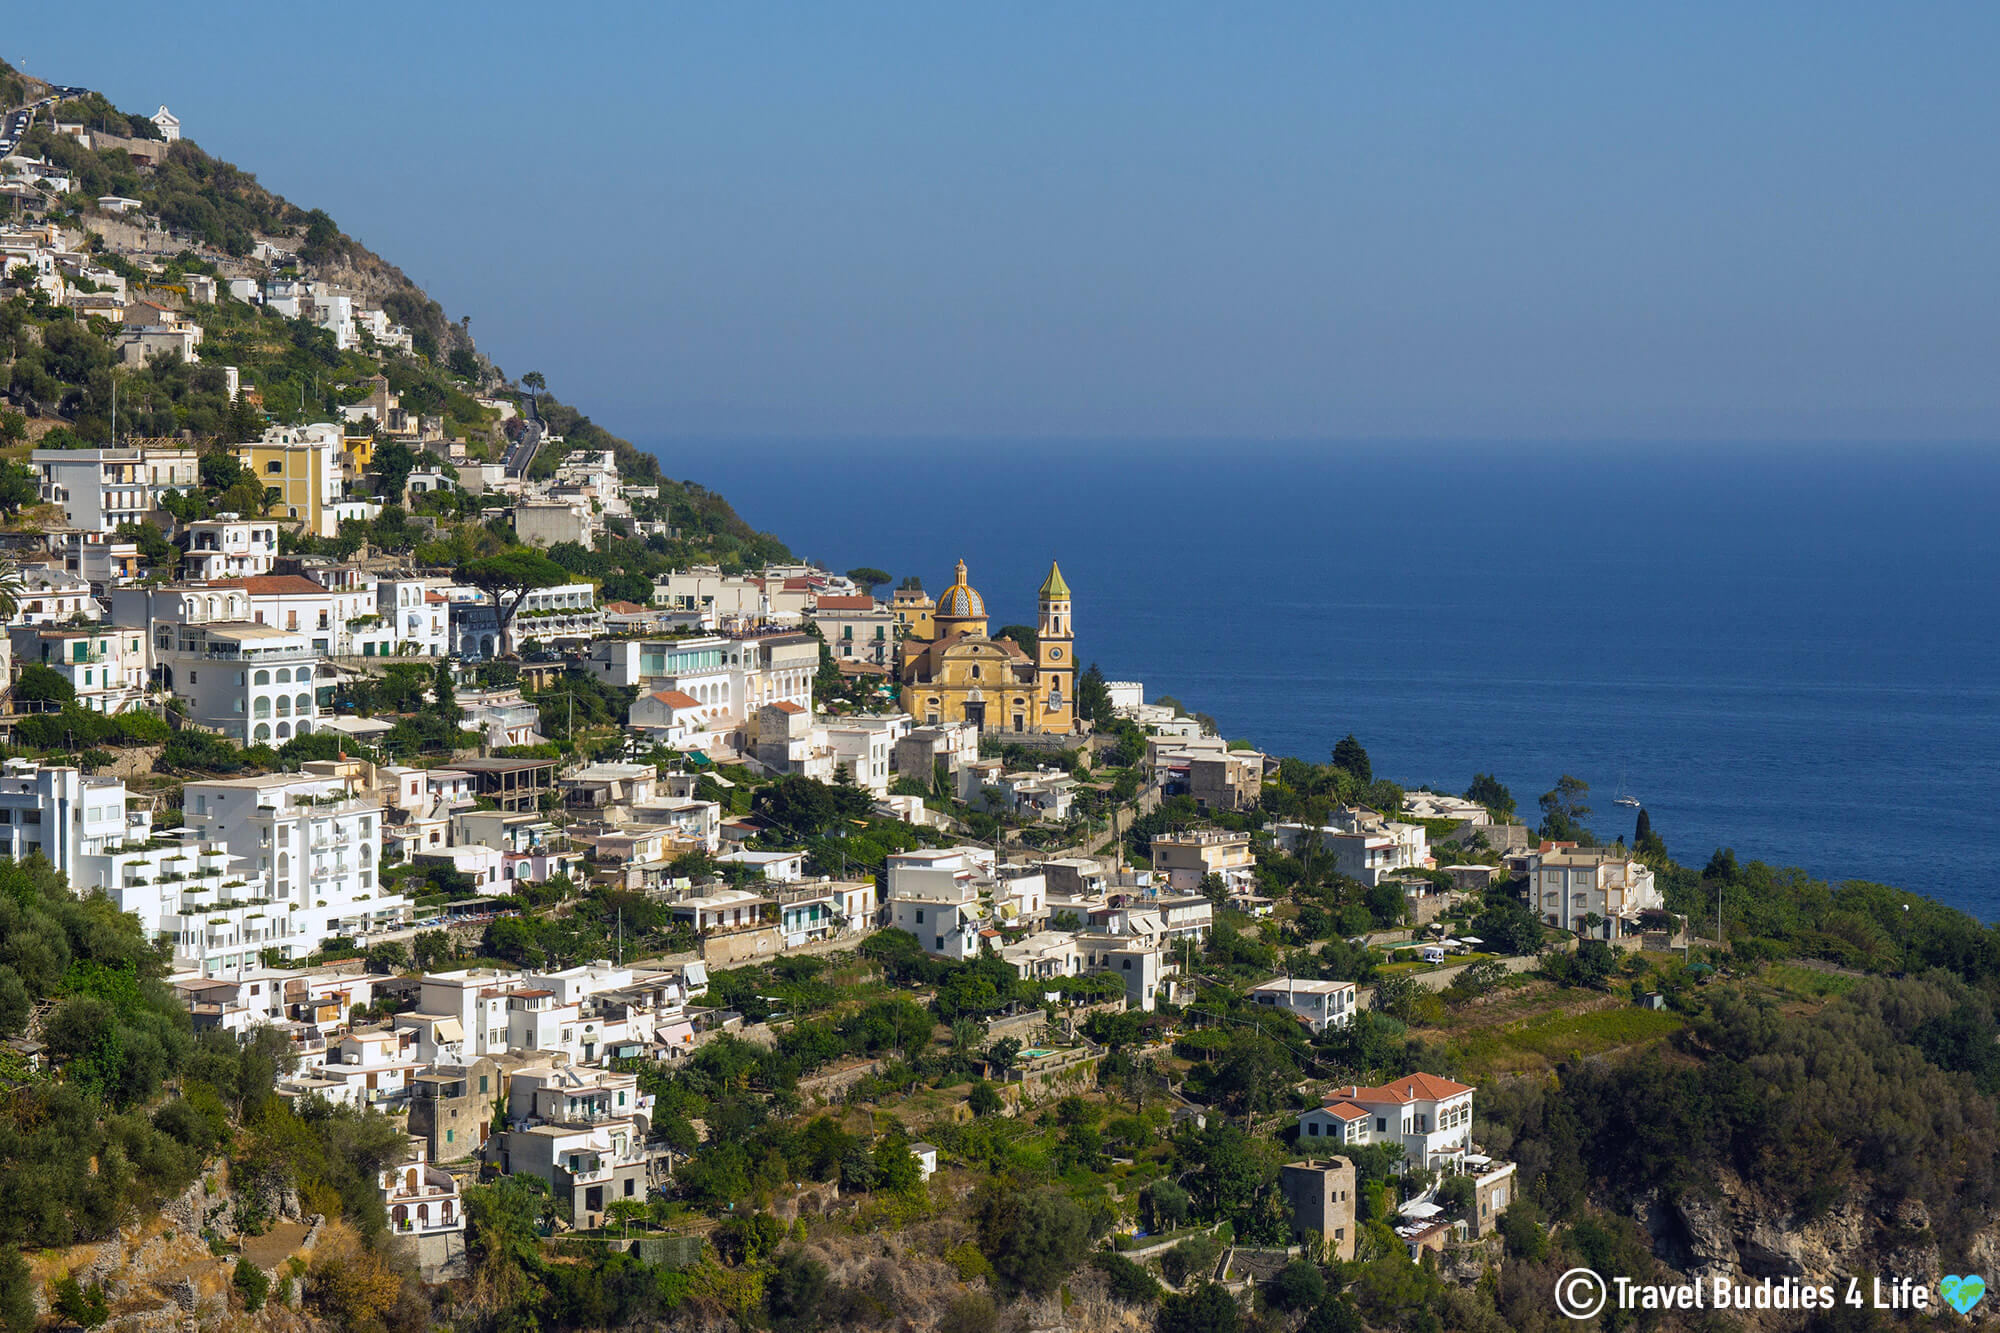 The Beautiful House Covered Hills Of The Amalfi Coast In Southern Italy, Europe